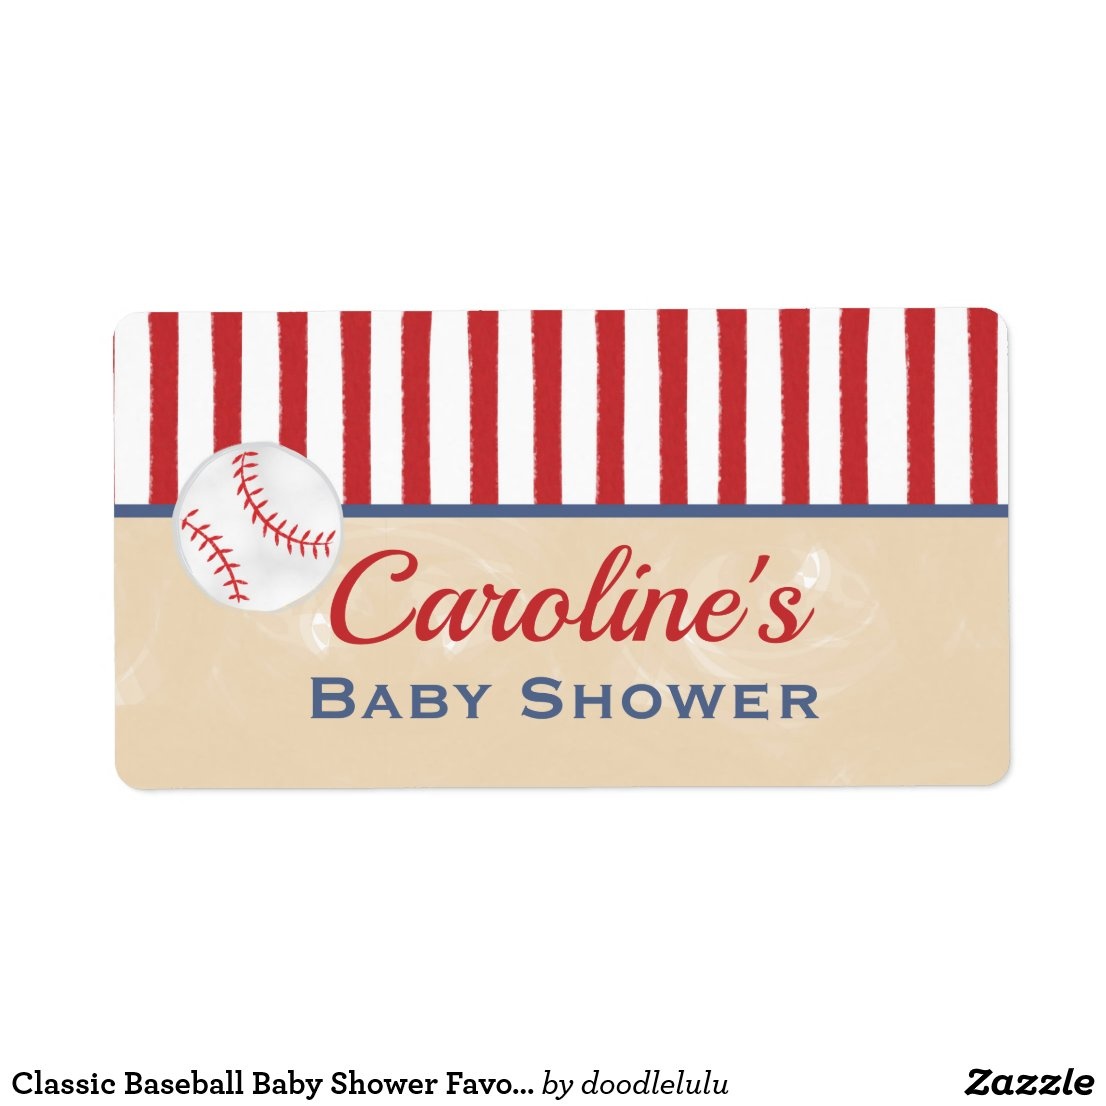 Classic Baseball Baby Shower Favor Label